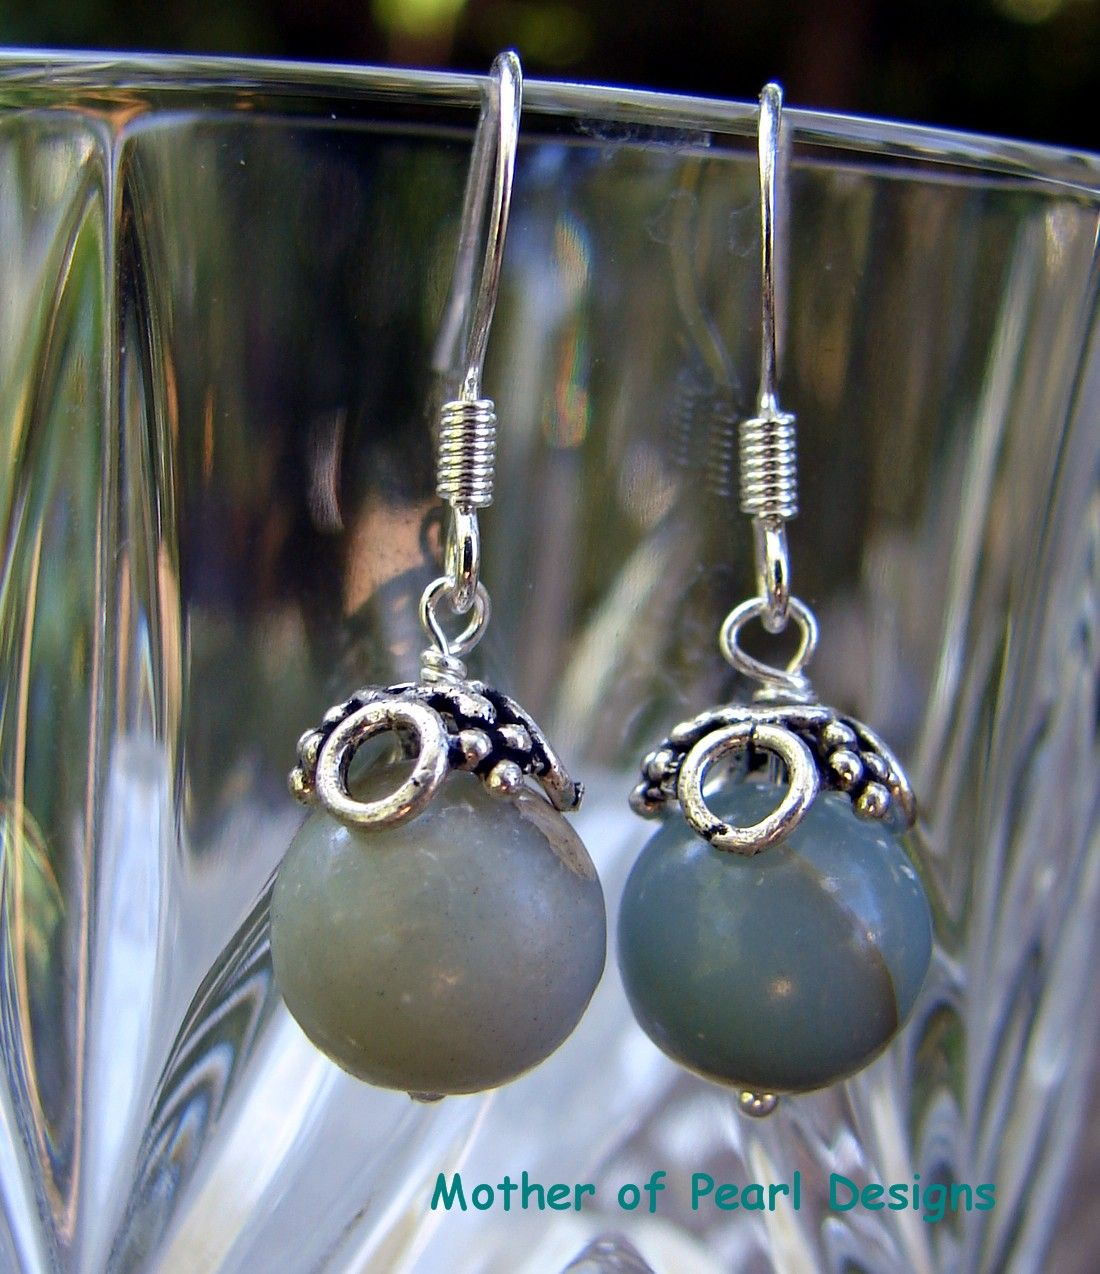 Aqua Terra Jasper Beads accented with sterling silver from motherofpearldesigns.com